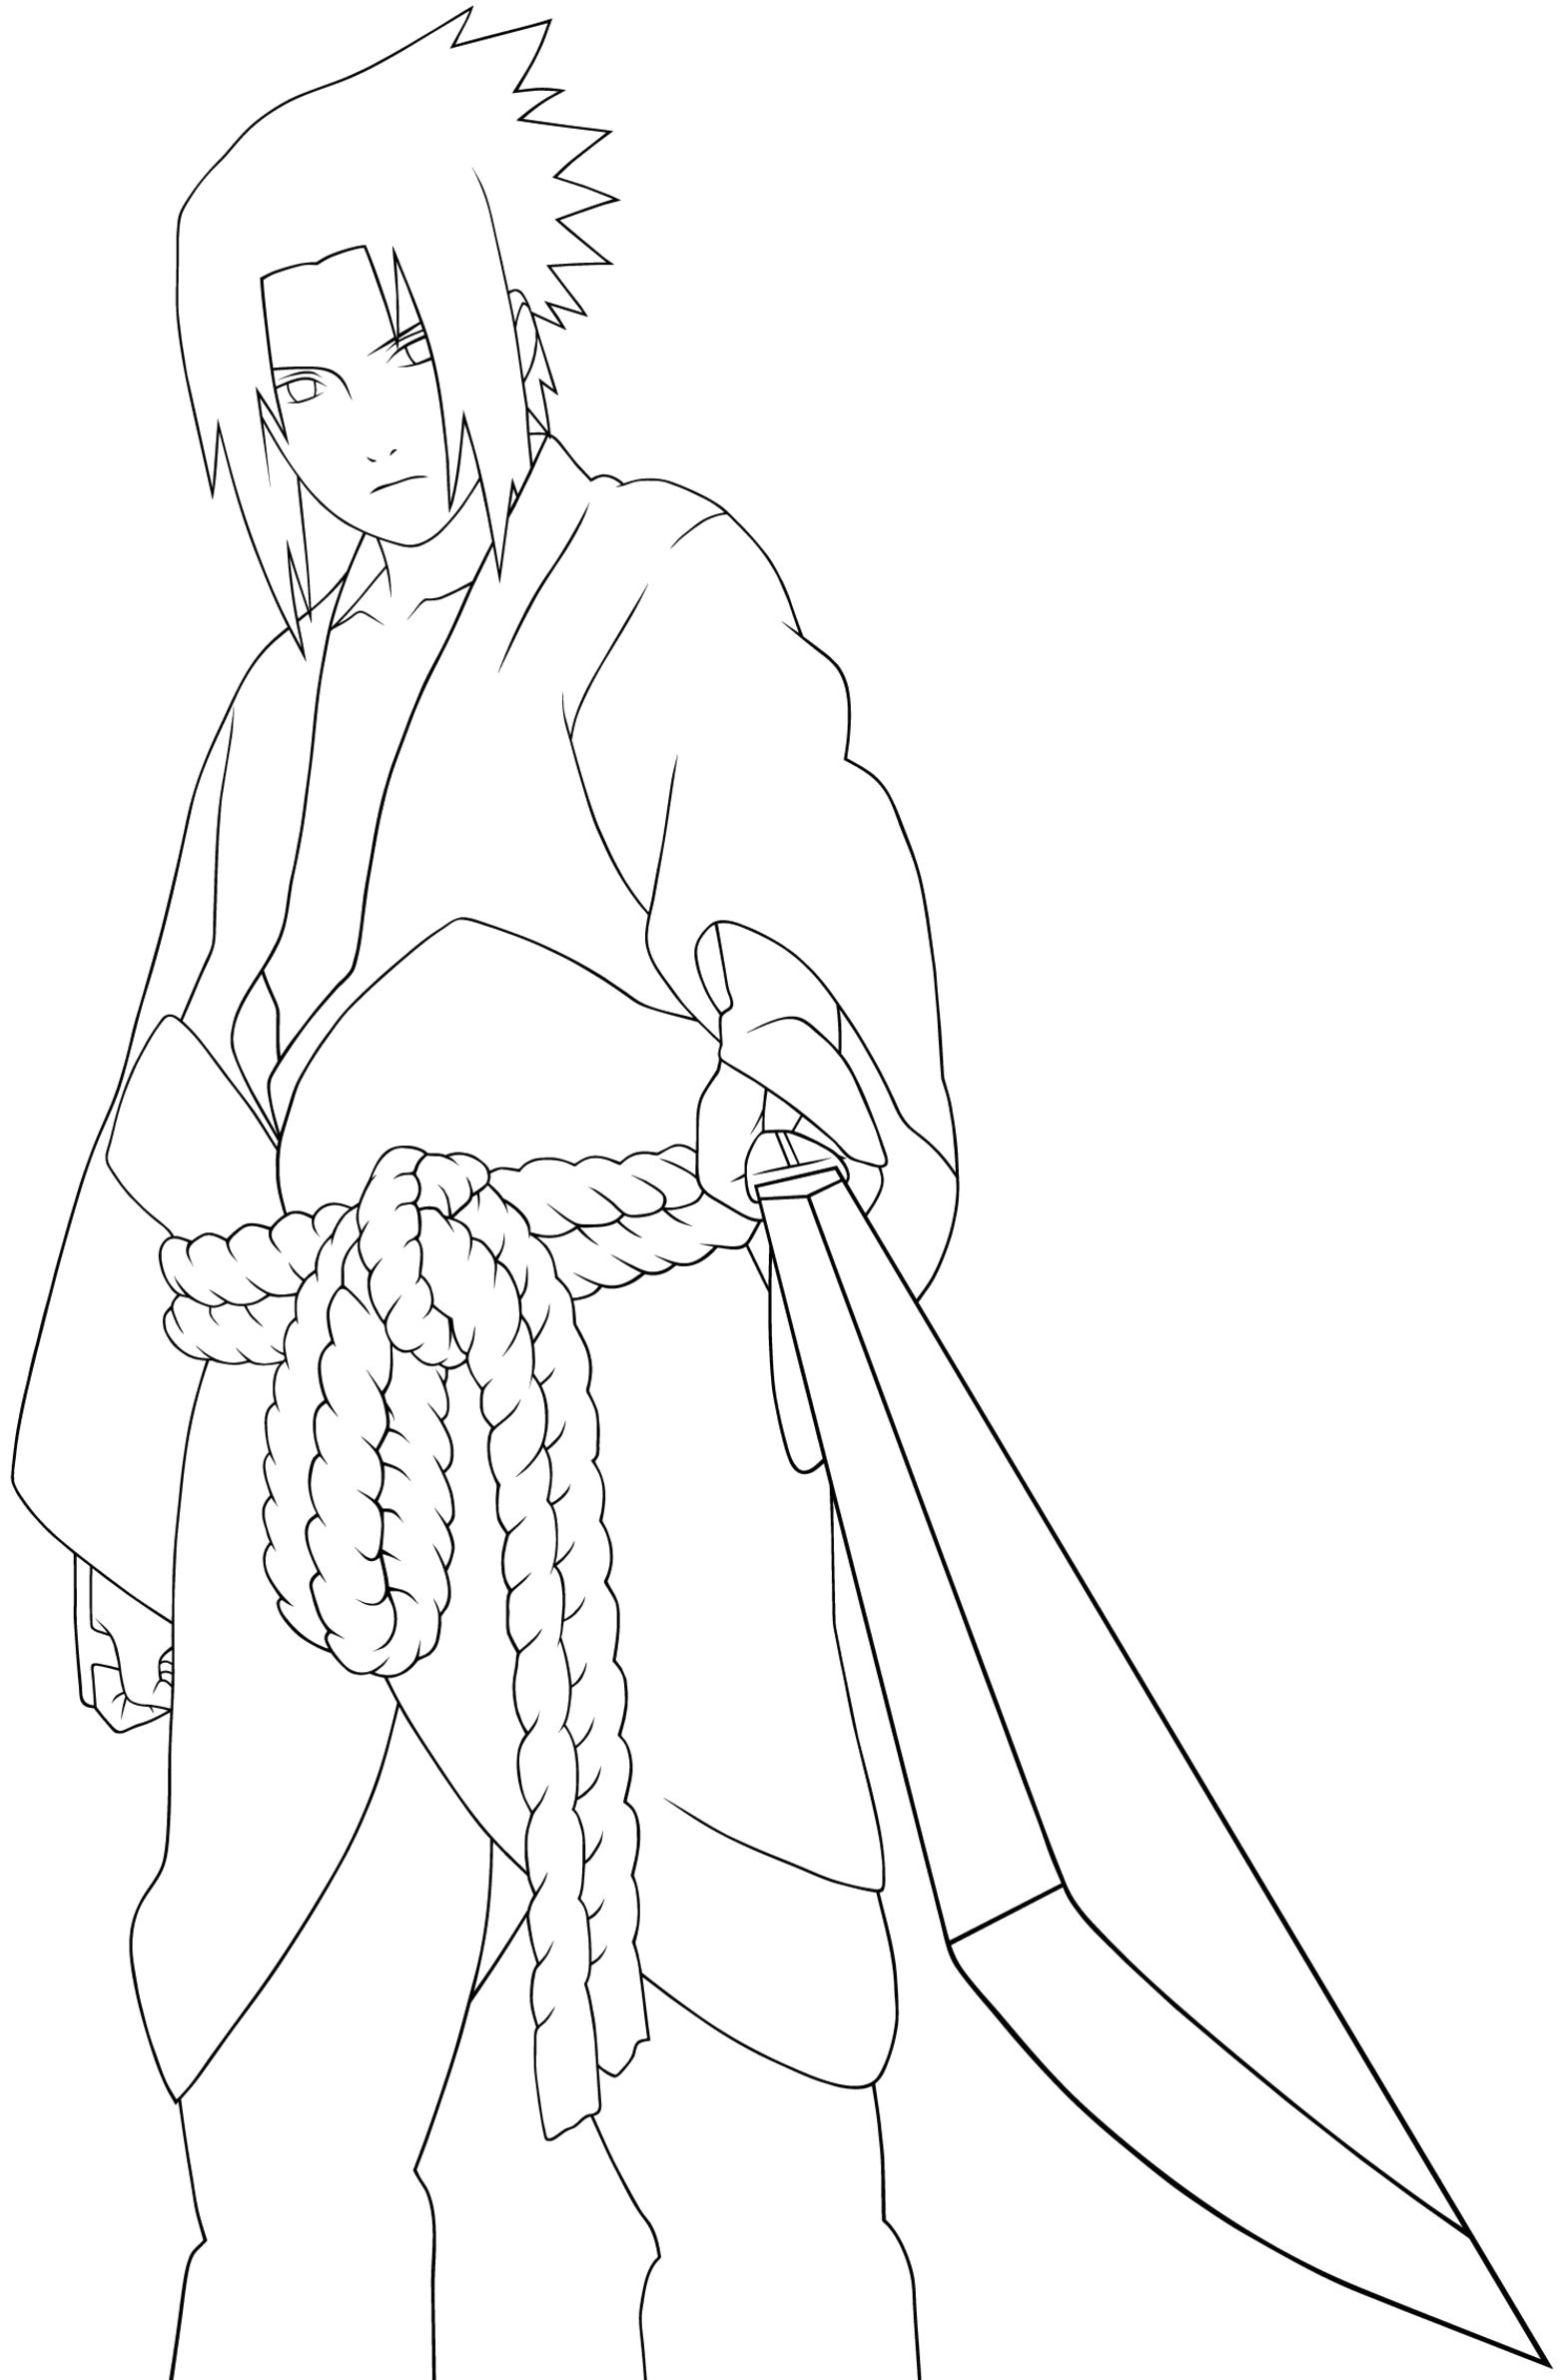 Naruto Style Drawing at GetDrawings.com | Free for personal use ...